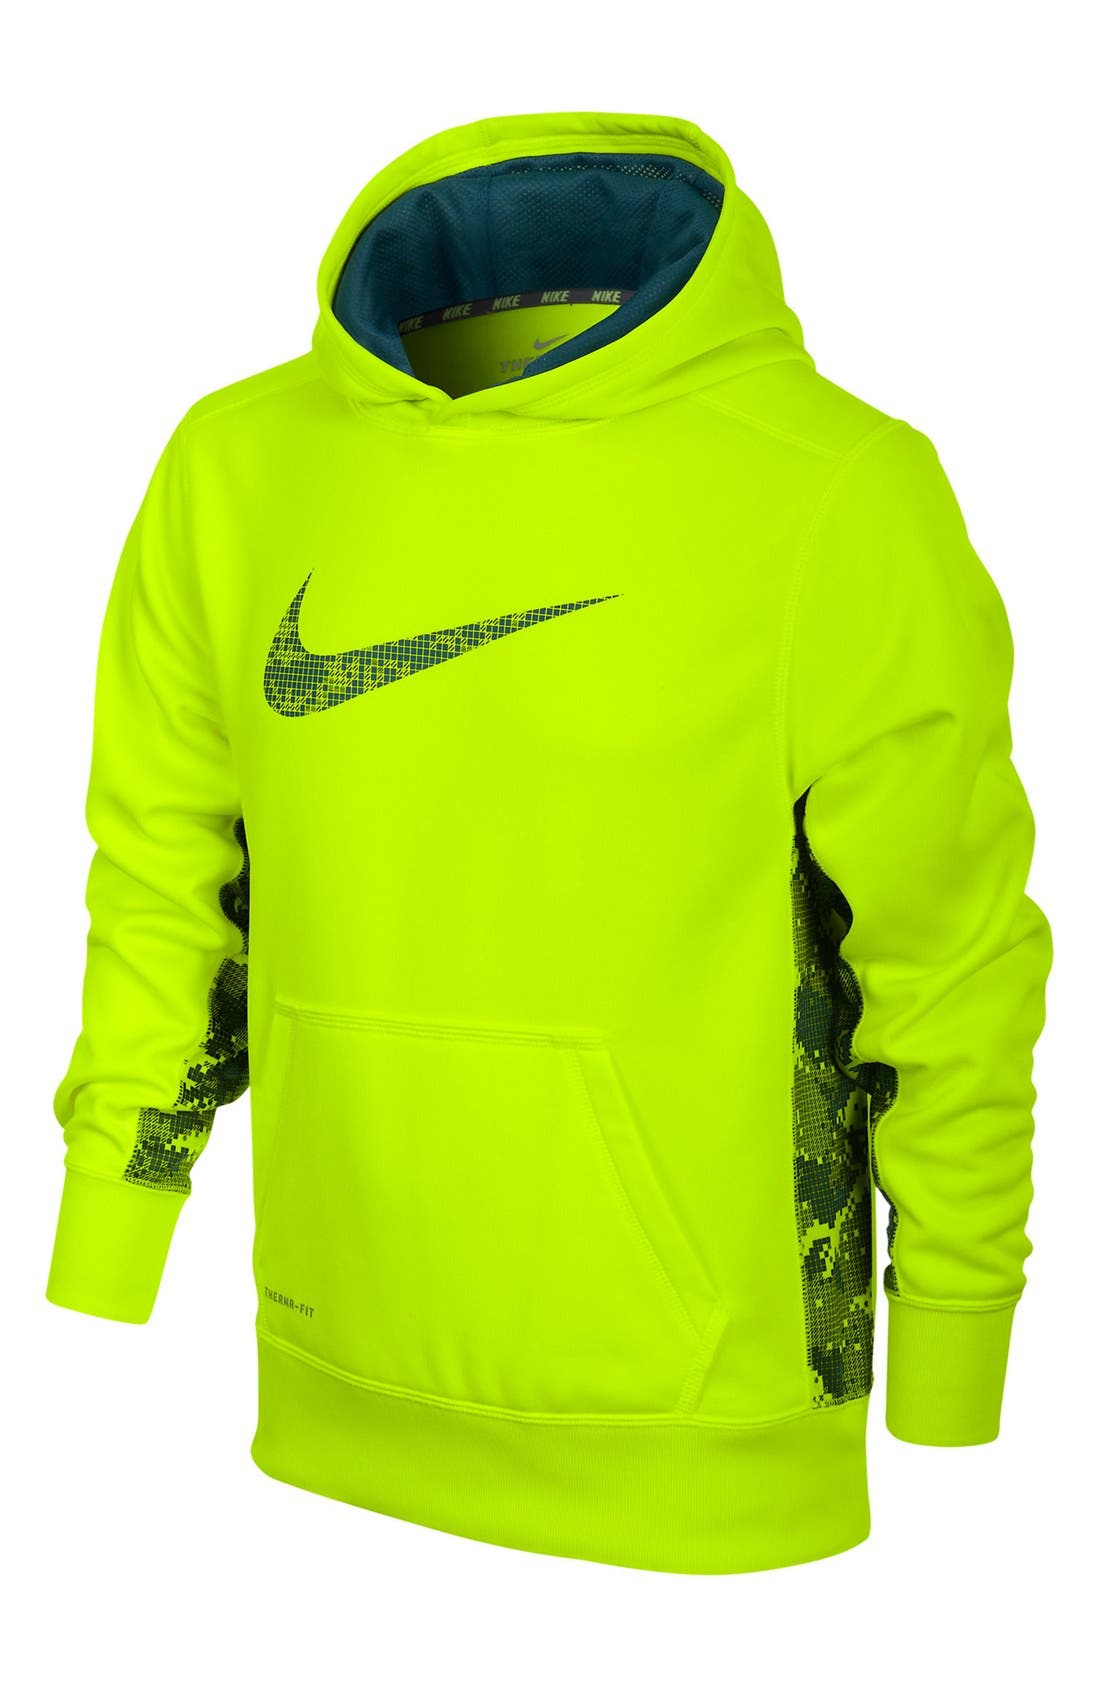 Alternate Image 1 Selected - Nike 'KO 2.0' Hoodie (Big Boys)